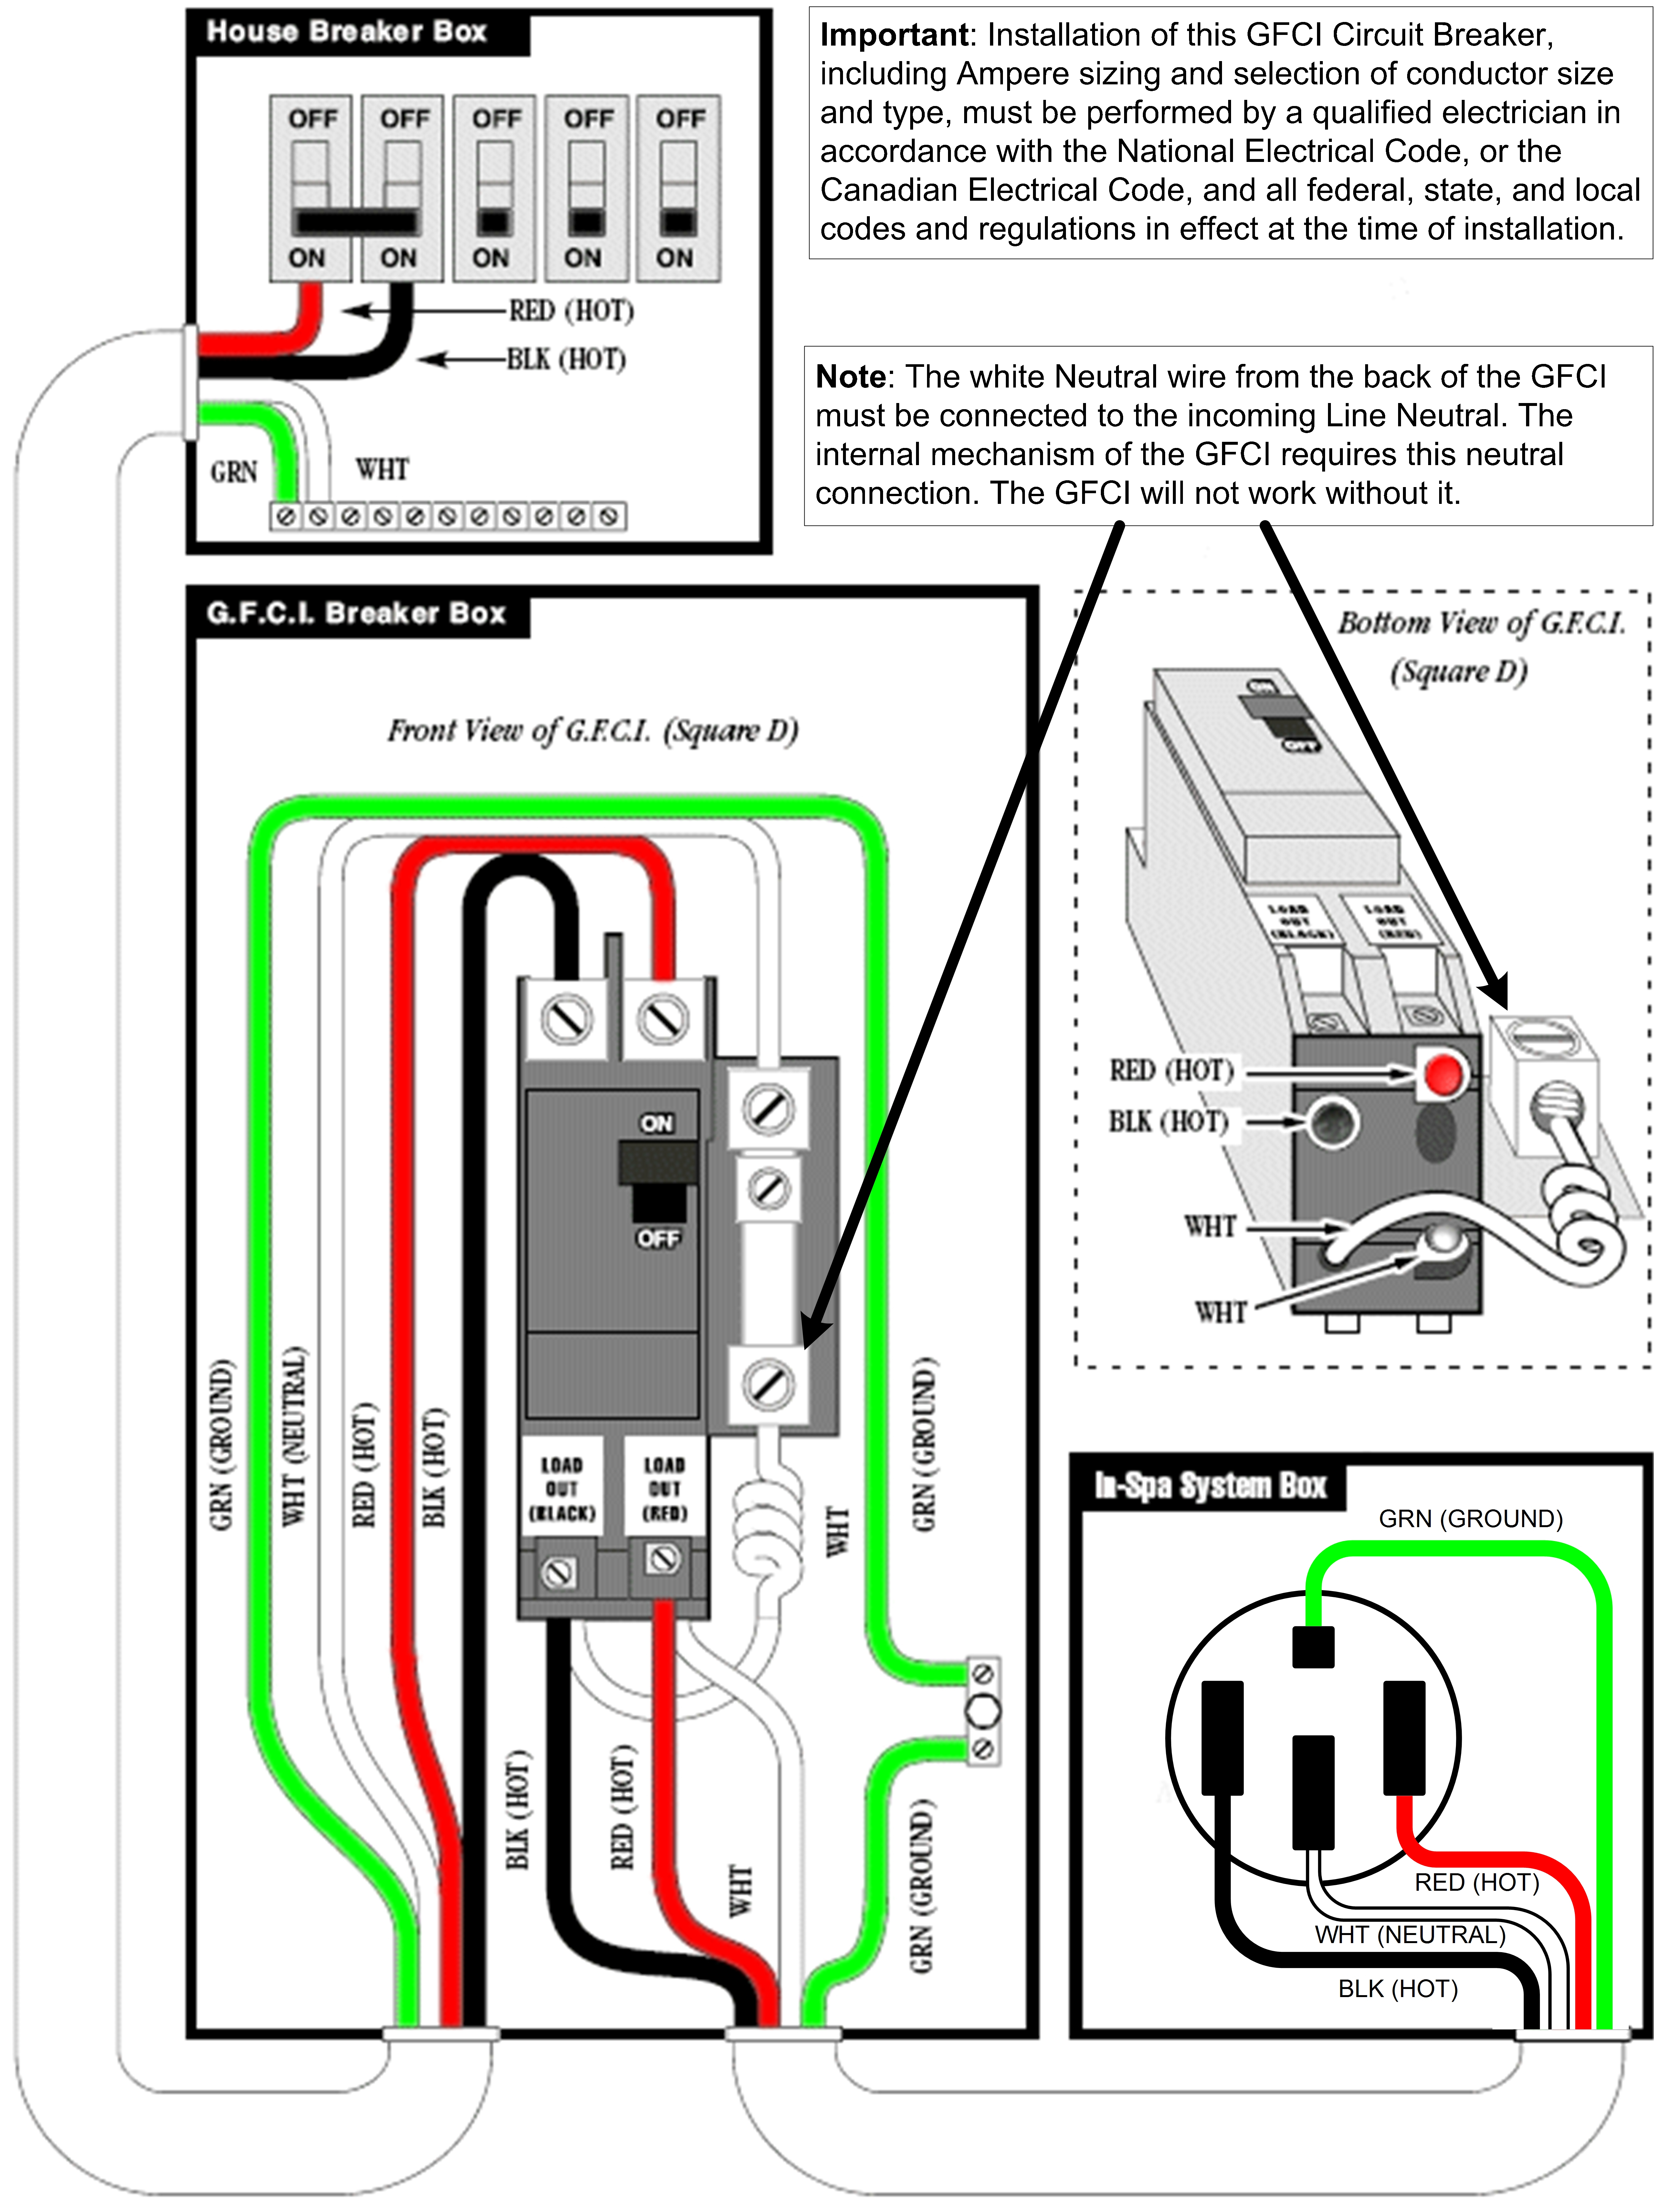 220 Wiring Diagram Oven 3 Prong | Wiring Diagram - 220V Wiring Diagram